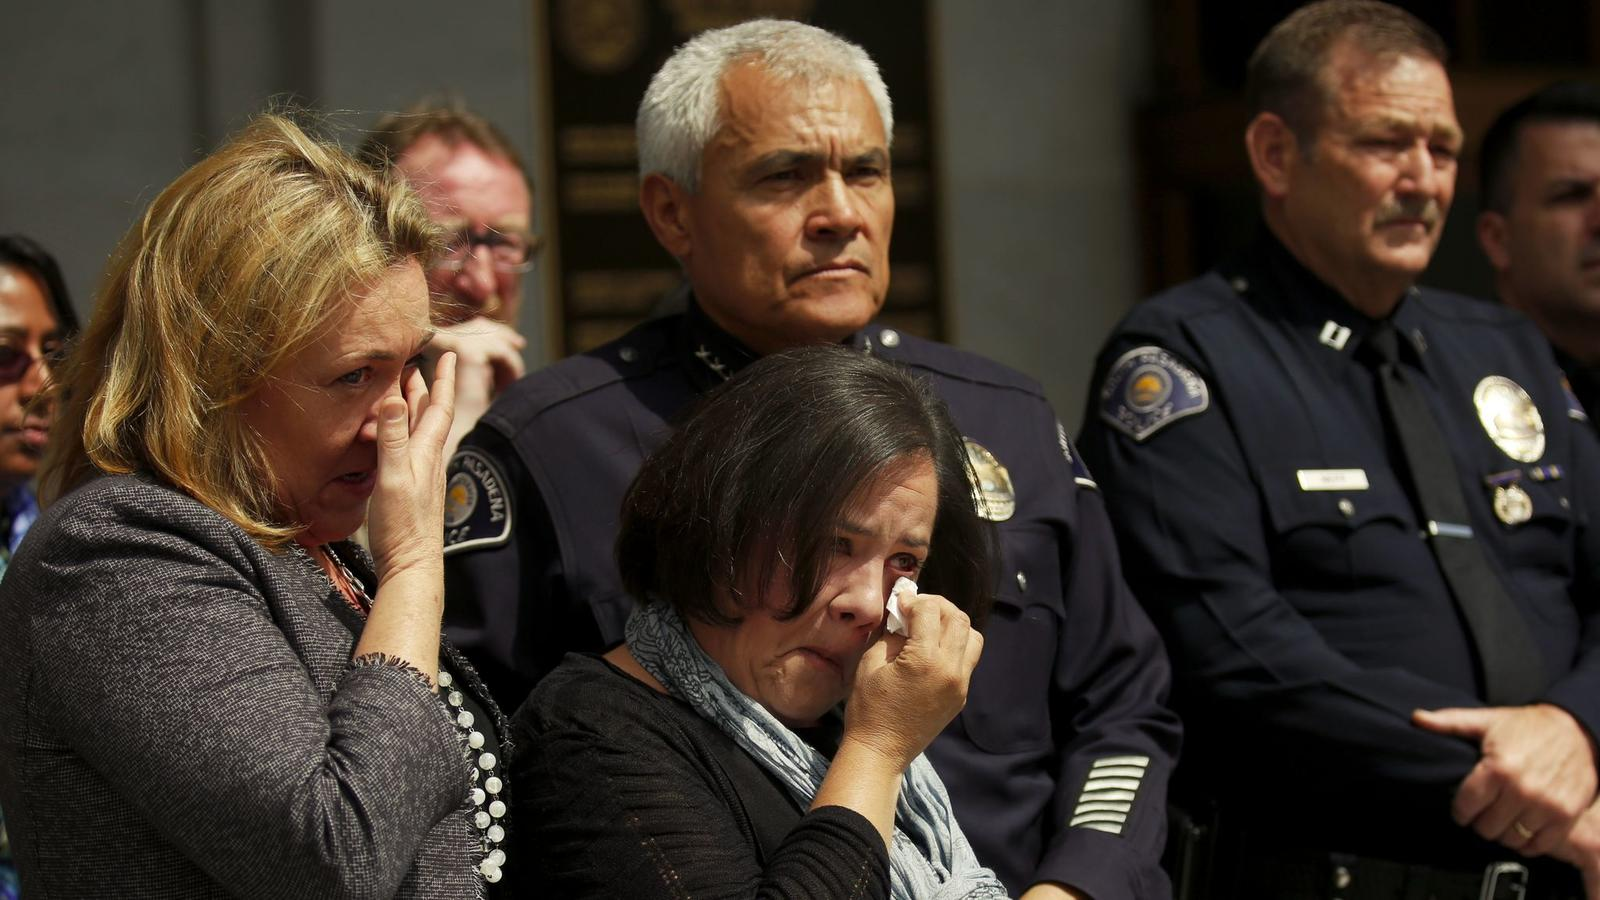 Ana Estevez, center, the mother of Aramazd Andressian Jr., wipes away tears during a news conference.